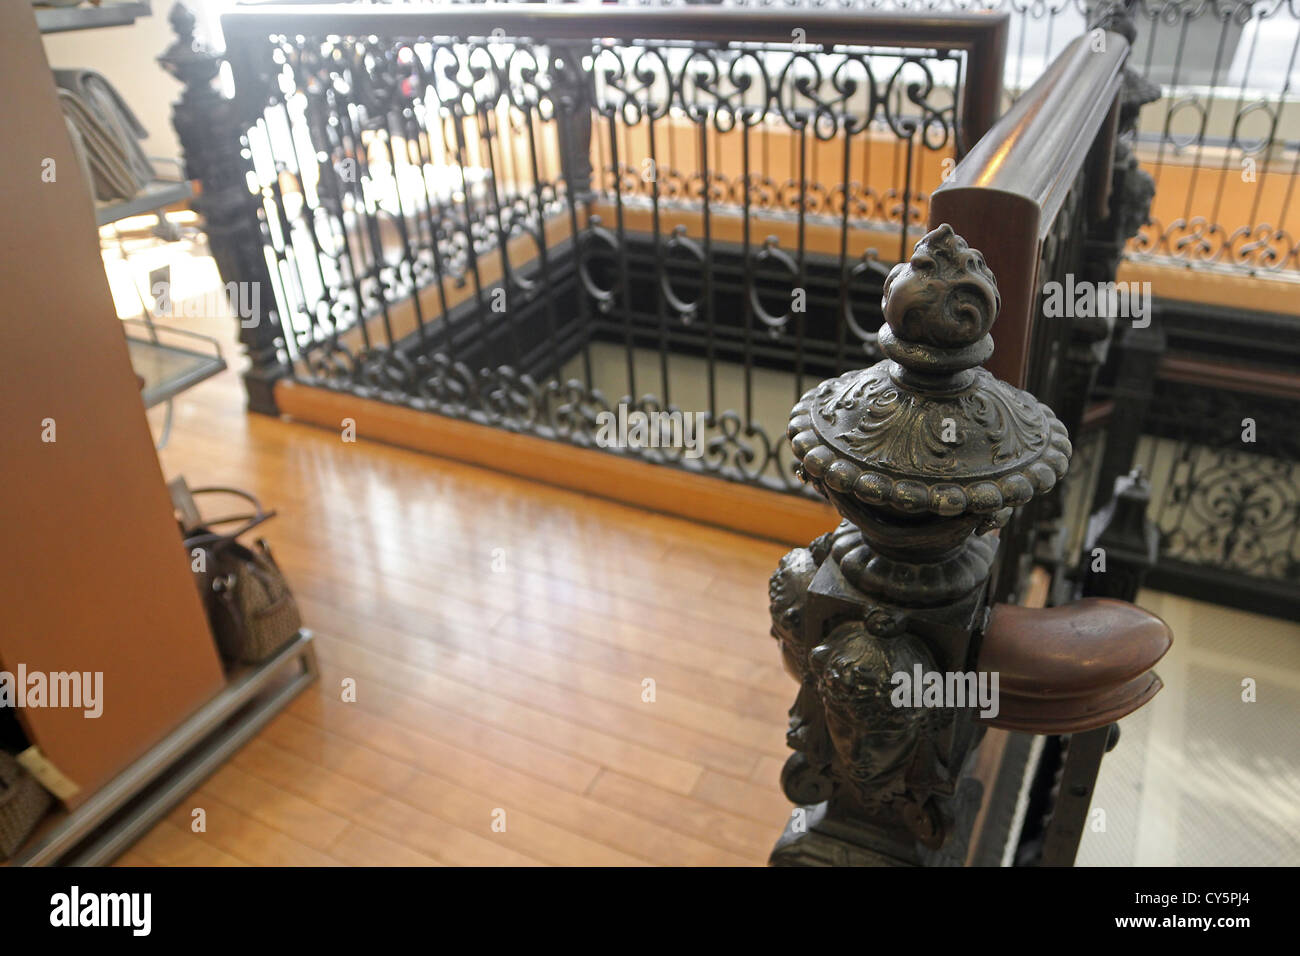 Ironwork at Macy's (formerly Marshall Field & Company) Chicago, Illinois - Stock Image